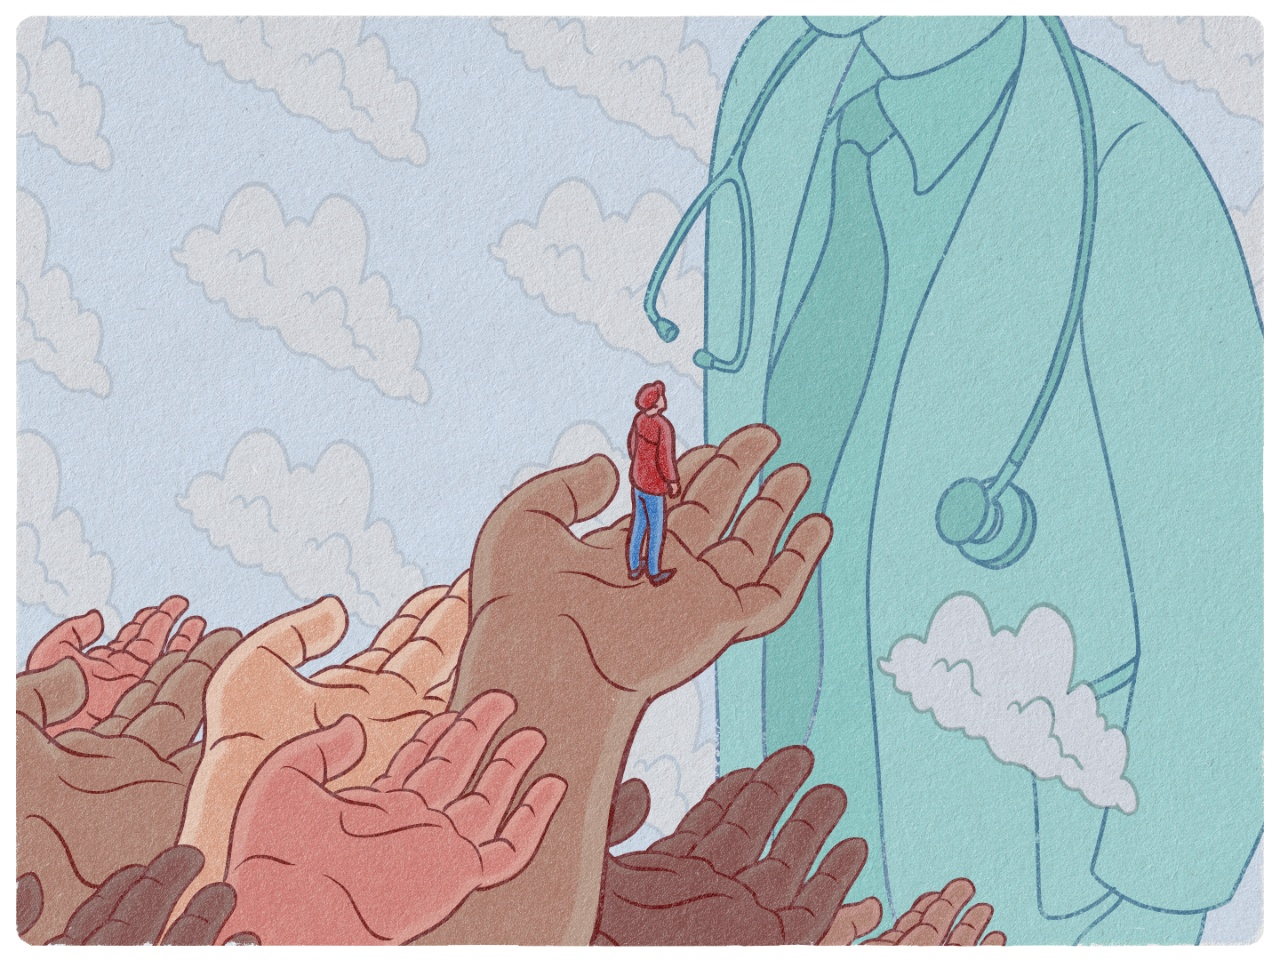 An illustration of a person receiving help with their healthcare by being lifted up on the hands of others.